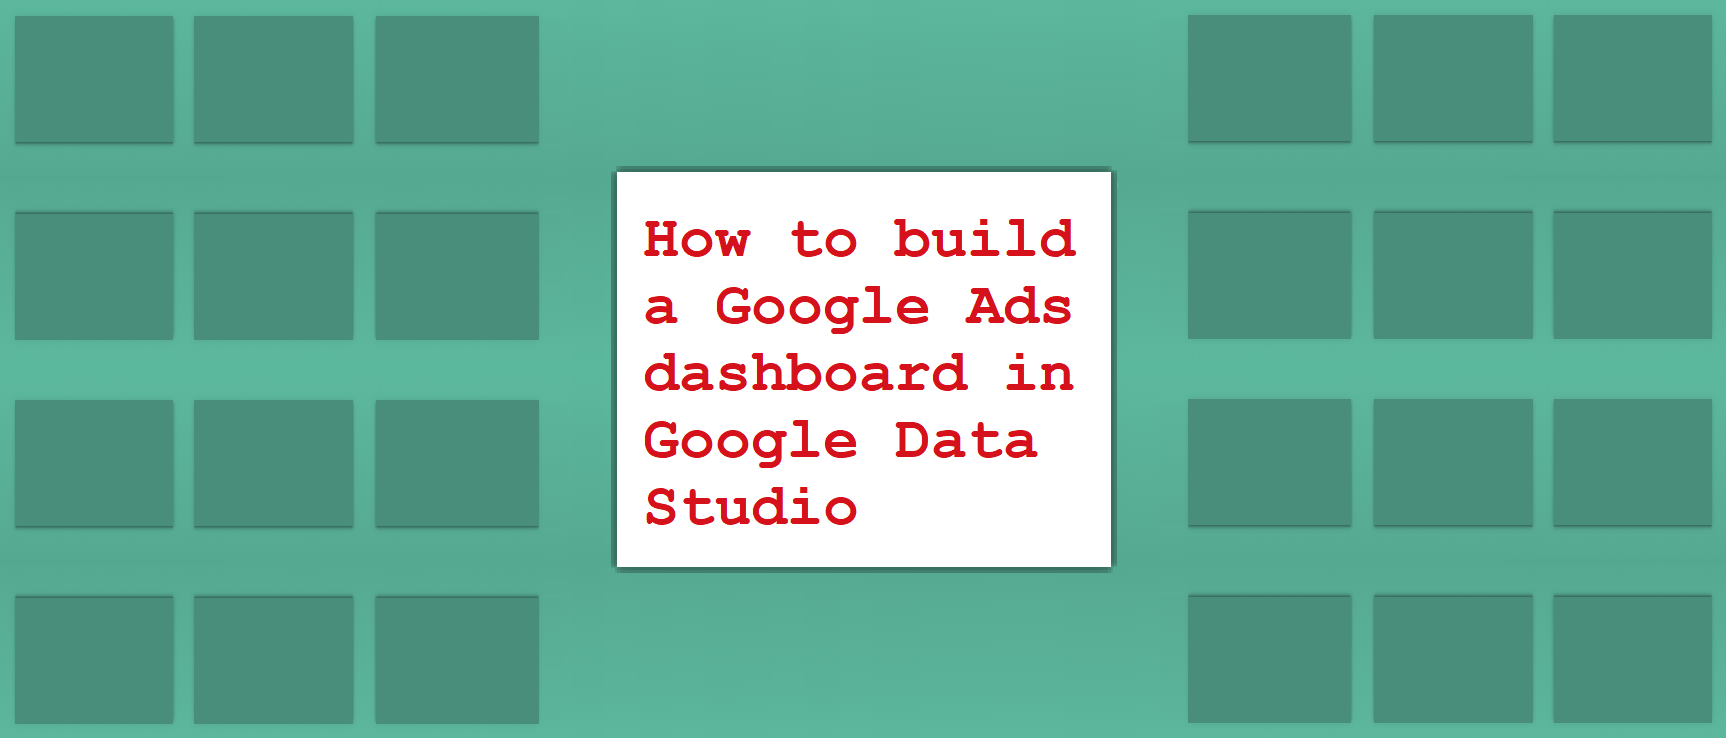 How to build a Google Ads dashboard in Google Data Studio